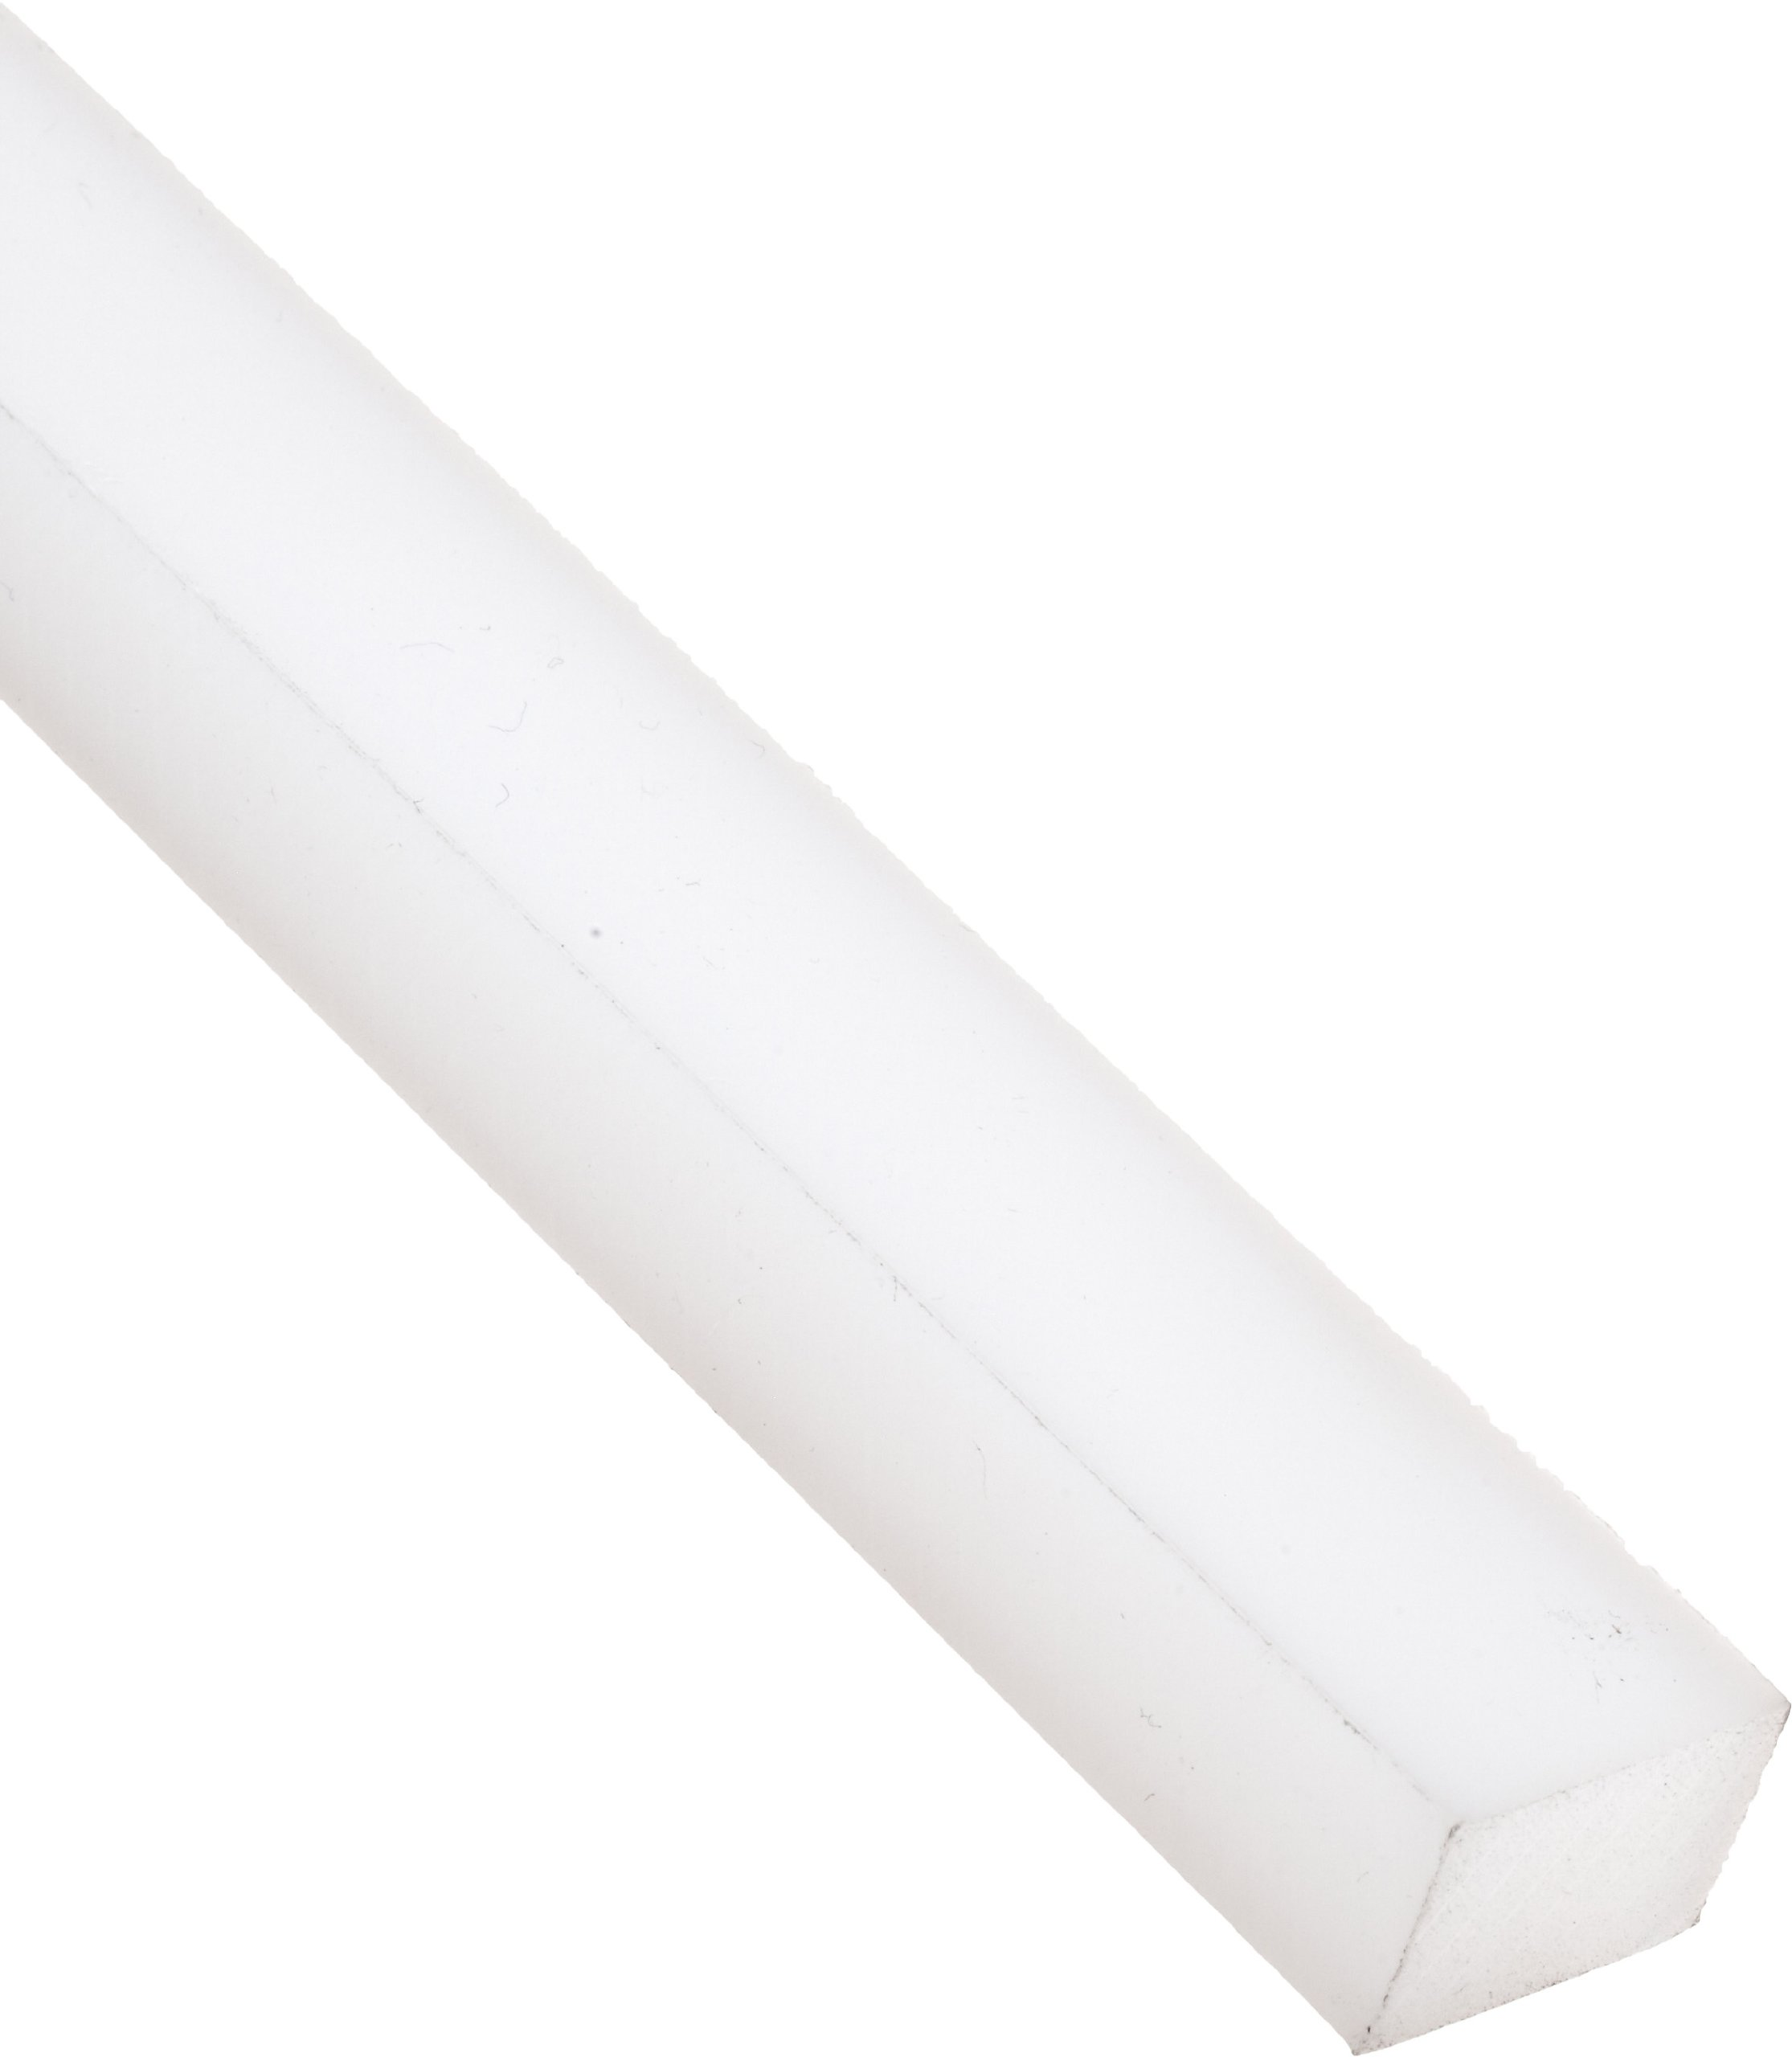 UHMW (Ultra High Molecular Weight Polyethylene) Rectangular Bar, Opaque White, Standard Tolerance, 3'' Thickness, 4'' Width, 5' Length